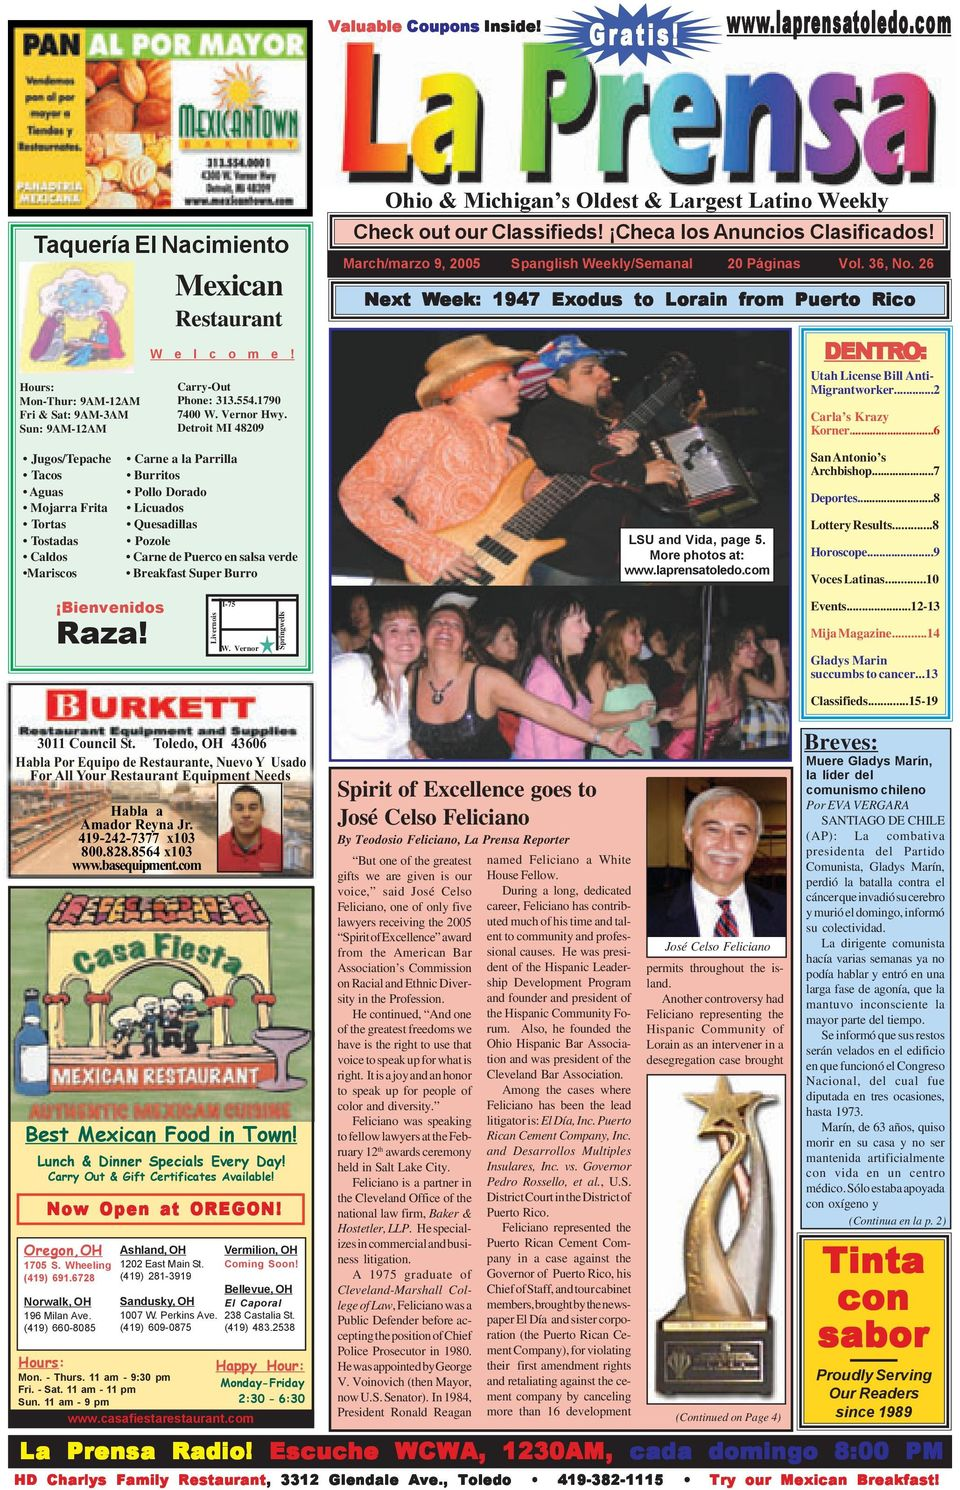 March/marzo 9, 2005 Spanglish Weekly/Semanal 20 Páginas Vol. 36, No. 26 Next Week: 1947 Exodus to Lorain from Puerto Rico DENTRO: Utah License Bill Anti- Migrantworker...2 Carla s Krazy Korner.